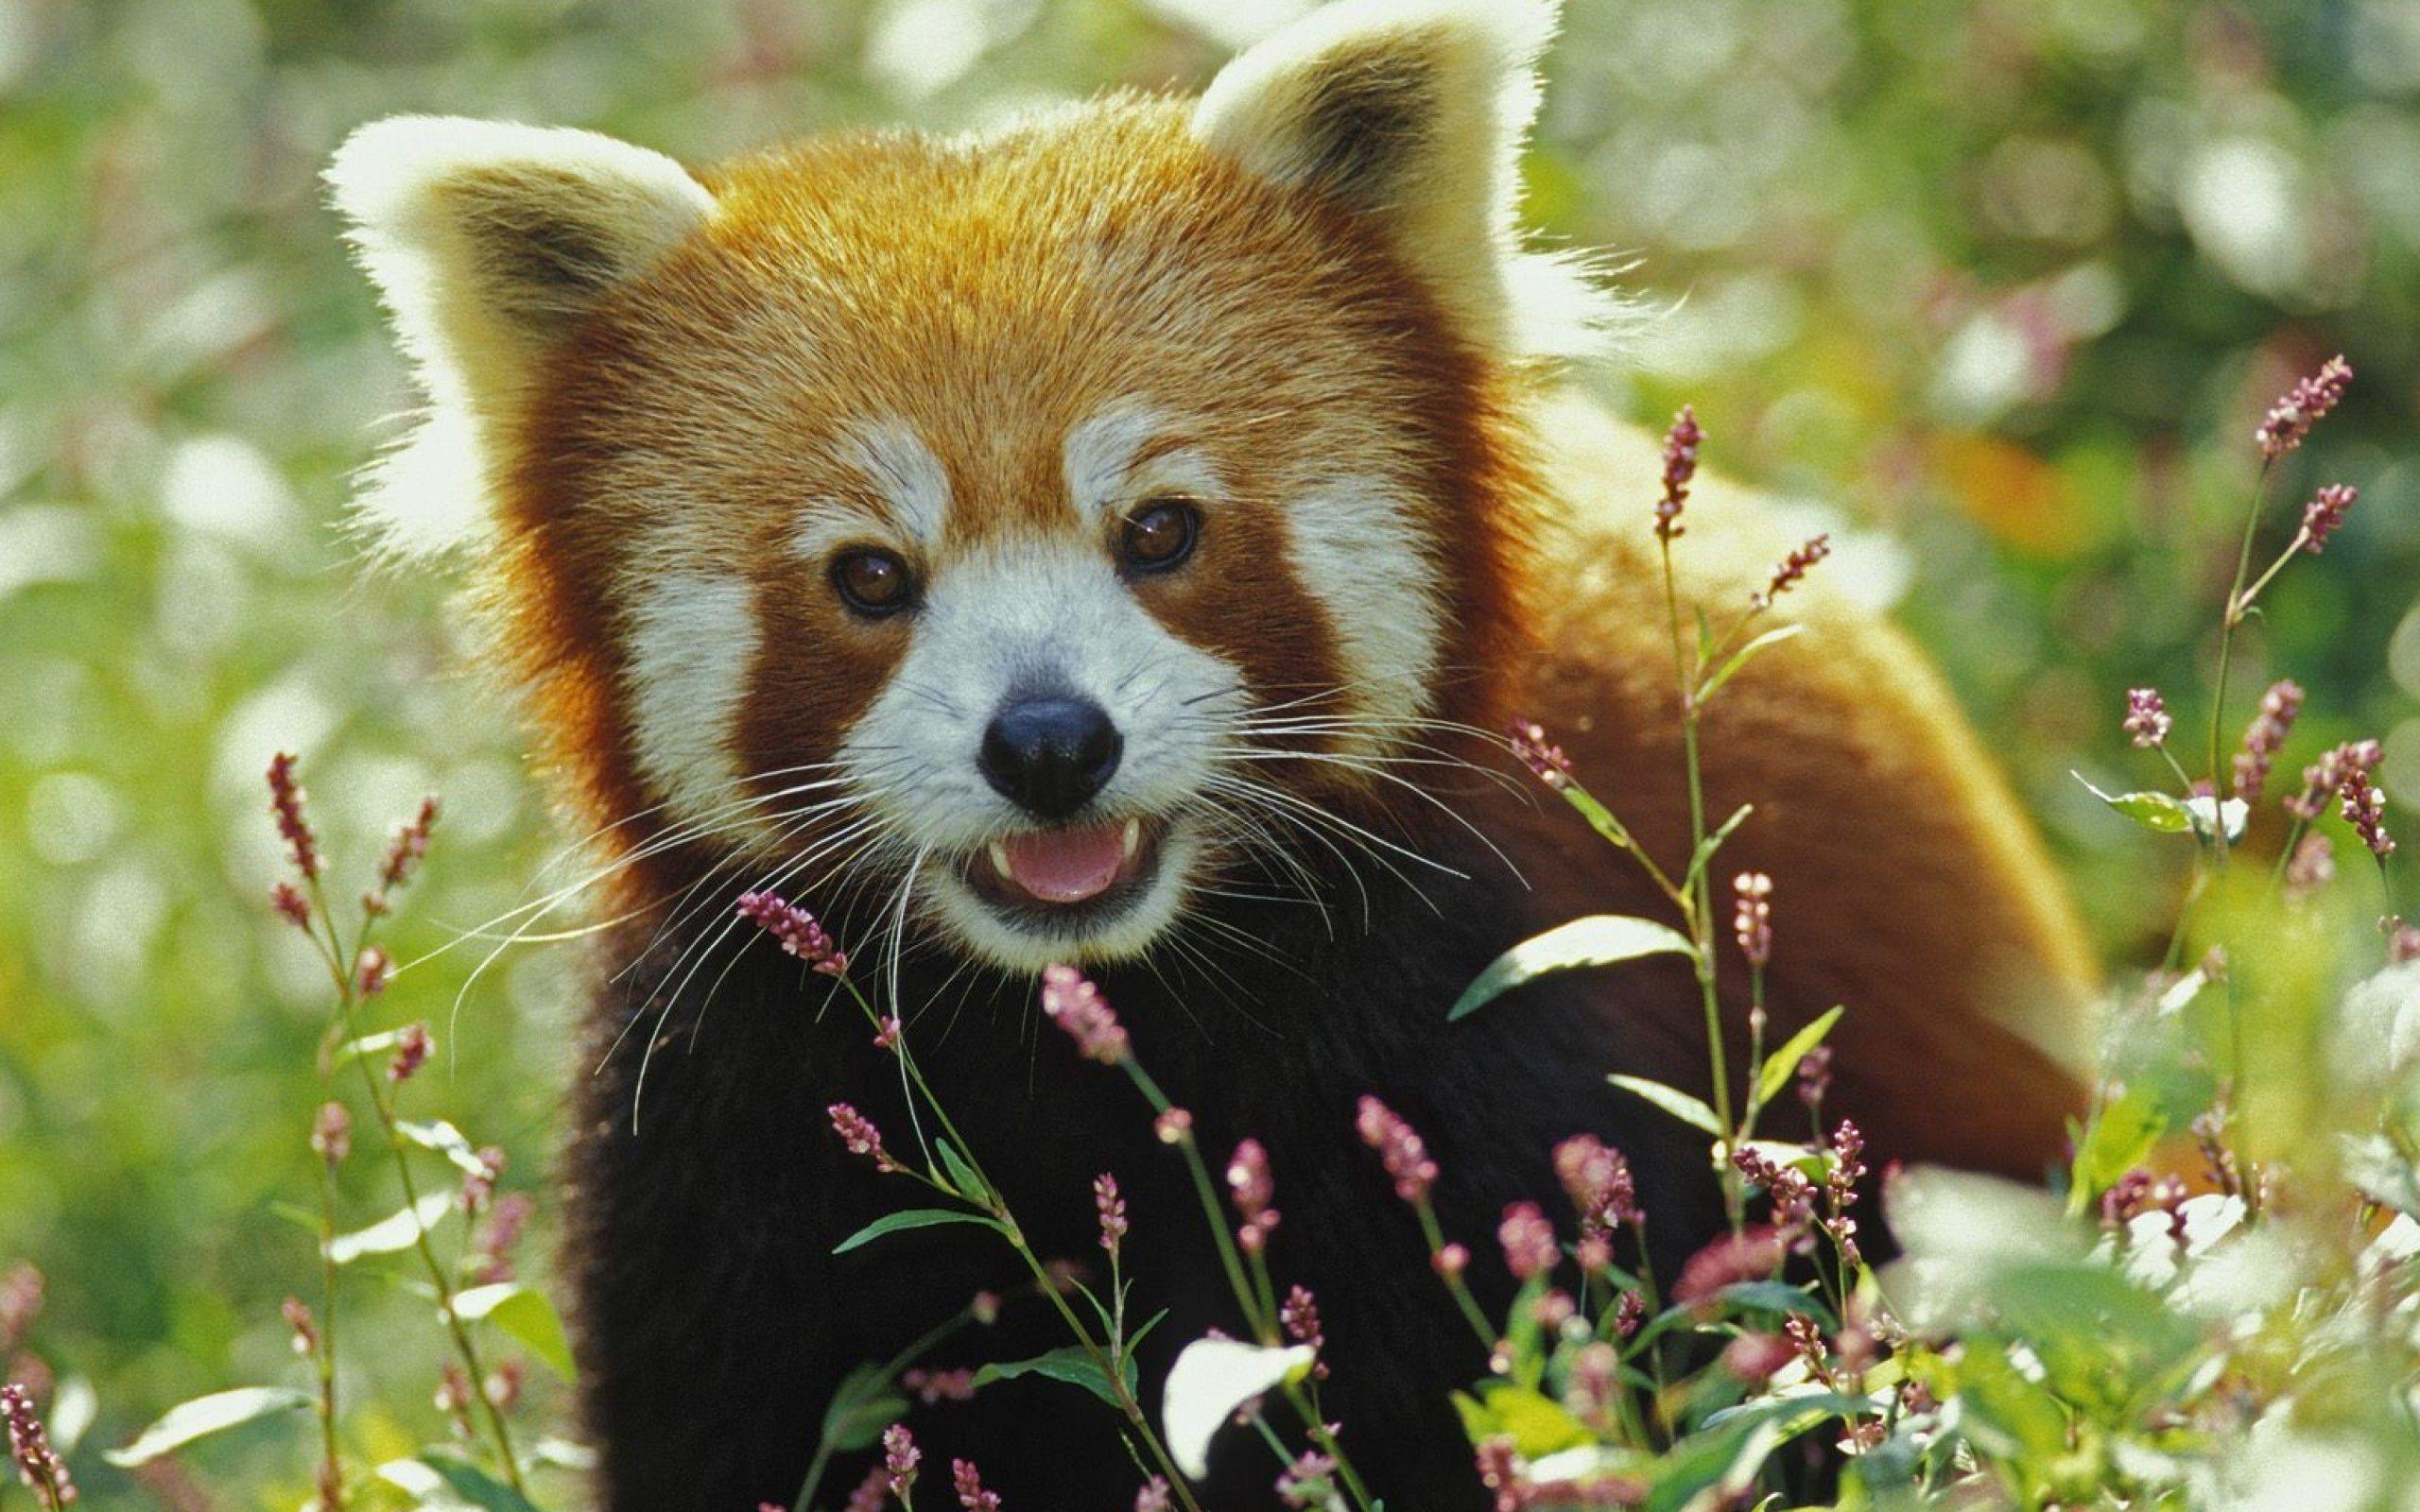 Firefox Red Panda Wallpaper HD - Animal Backgrounds